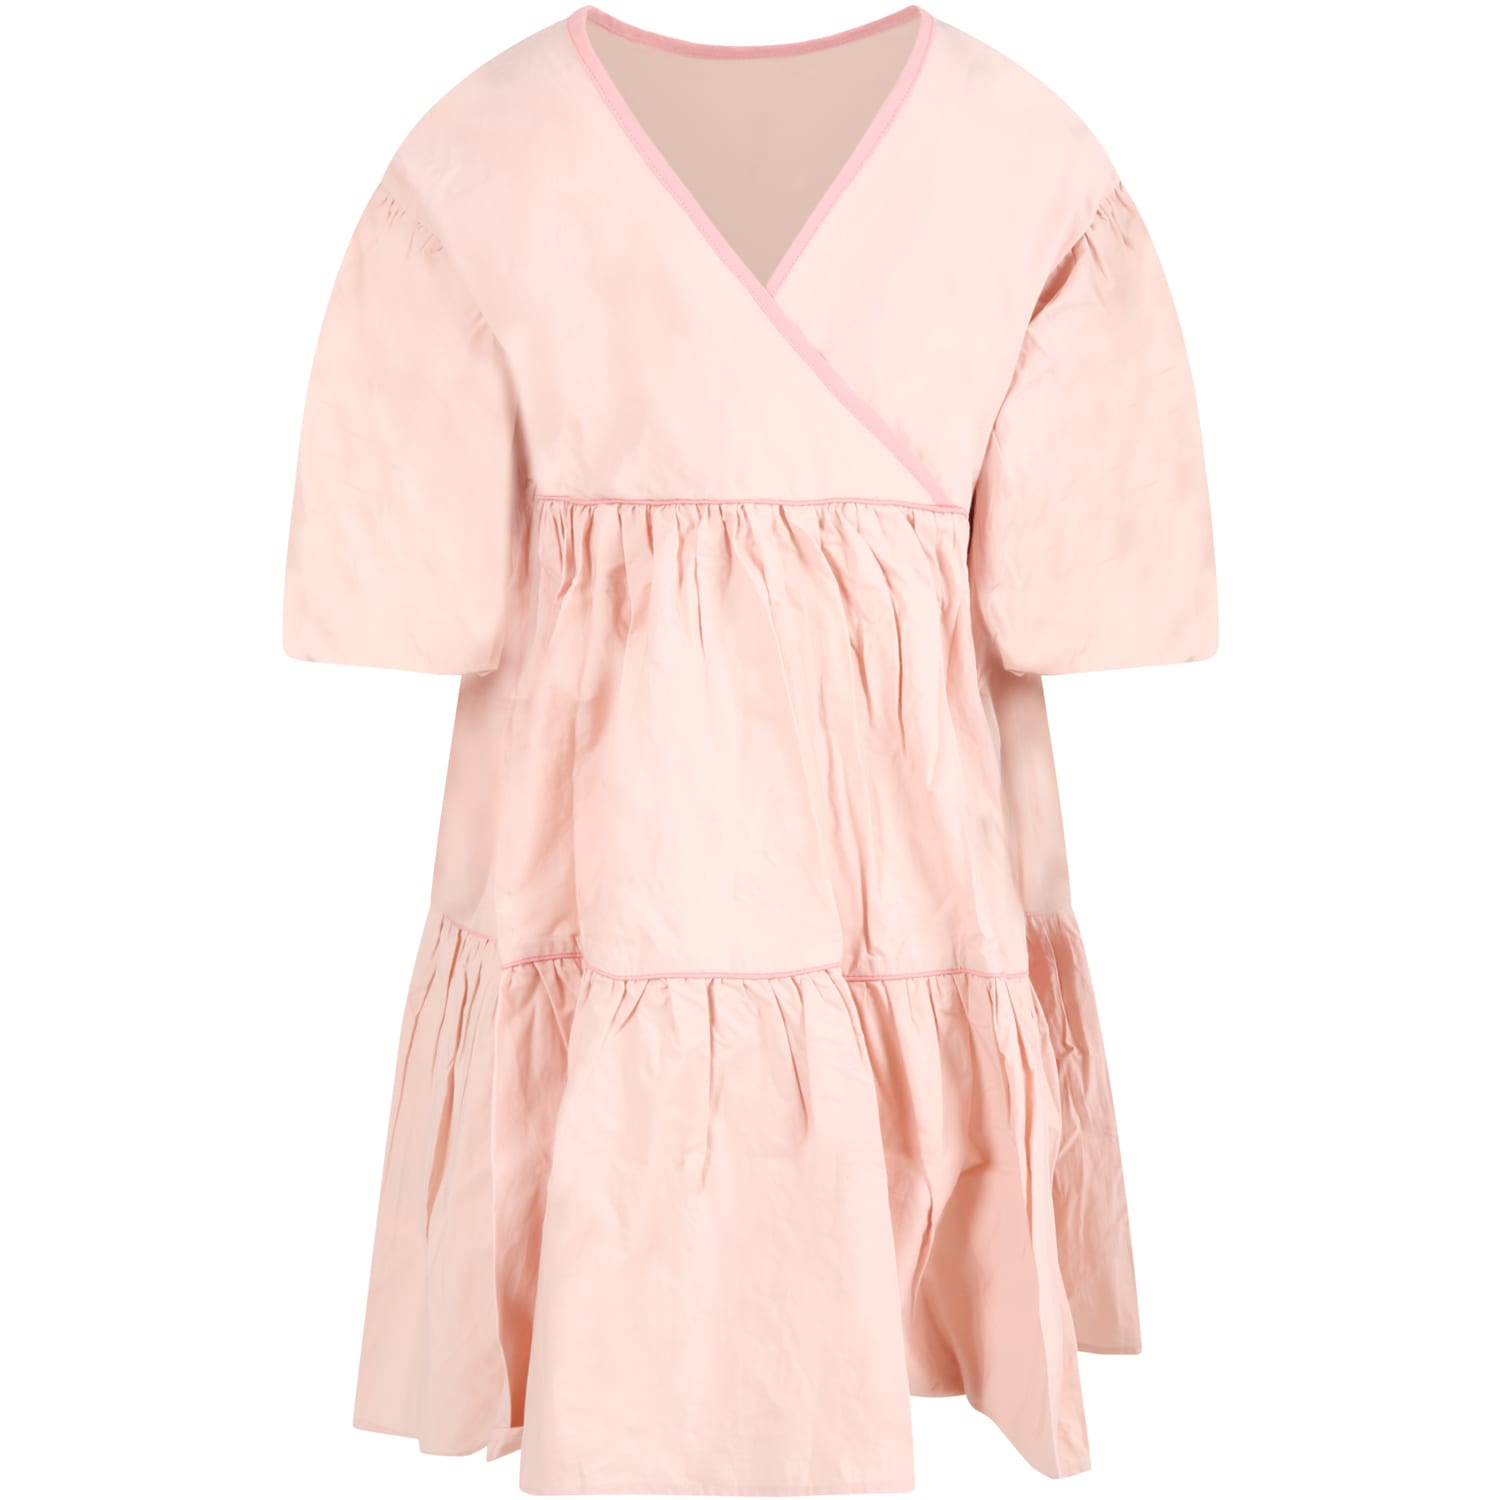 Buy Molo Pink Dress For Girl online, shop Molo with free shipping